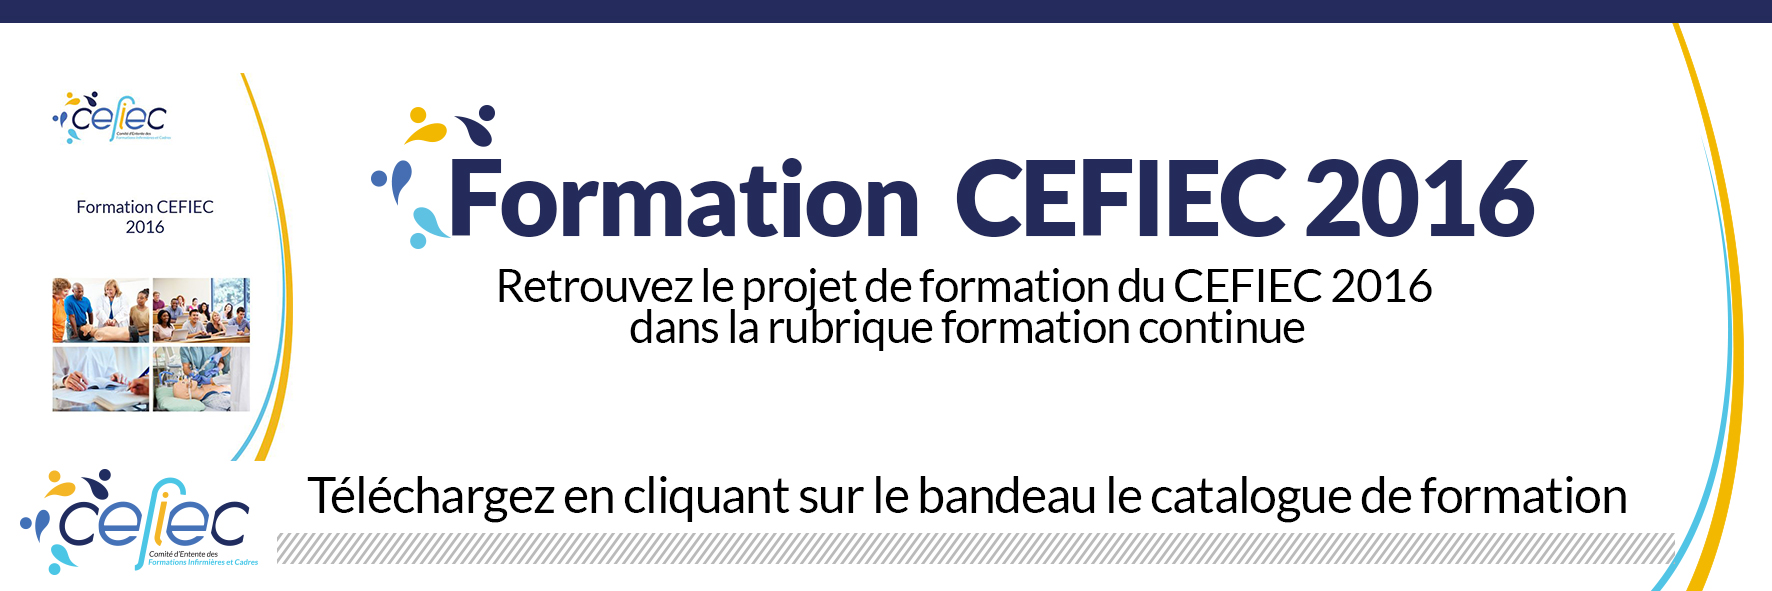 Formation CEFIEC 2016